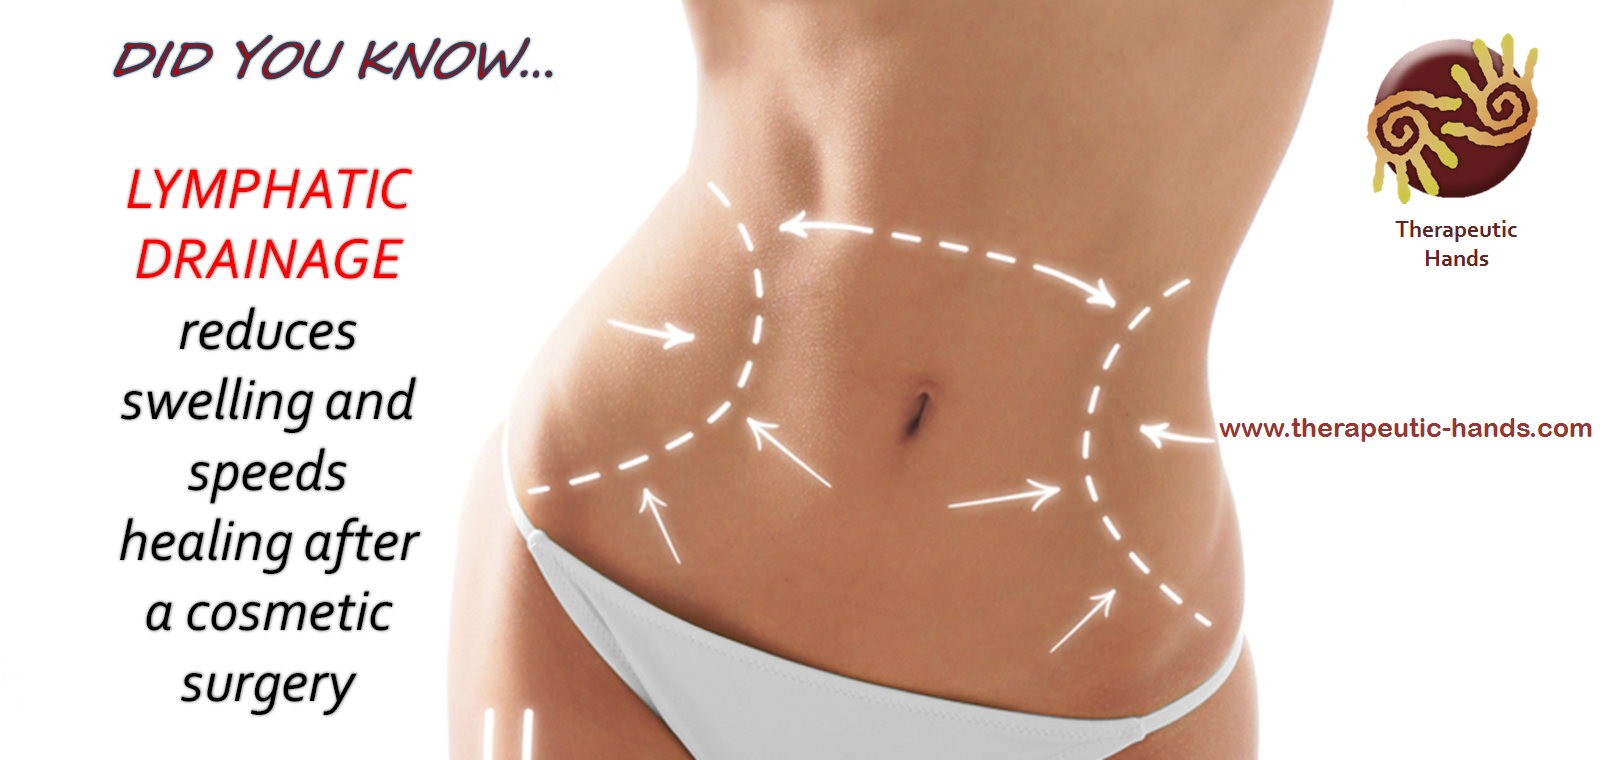 Lymphatic Drainage Is An Essential Item On The Road To Recovery From